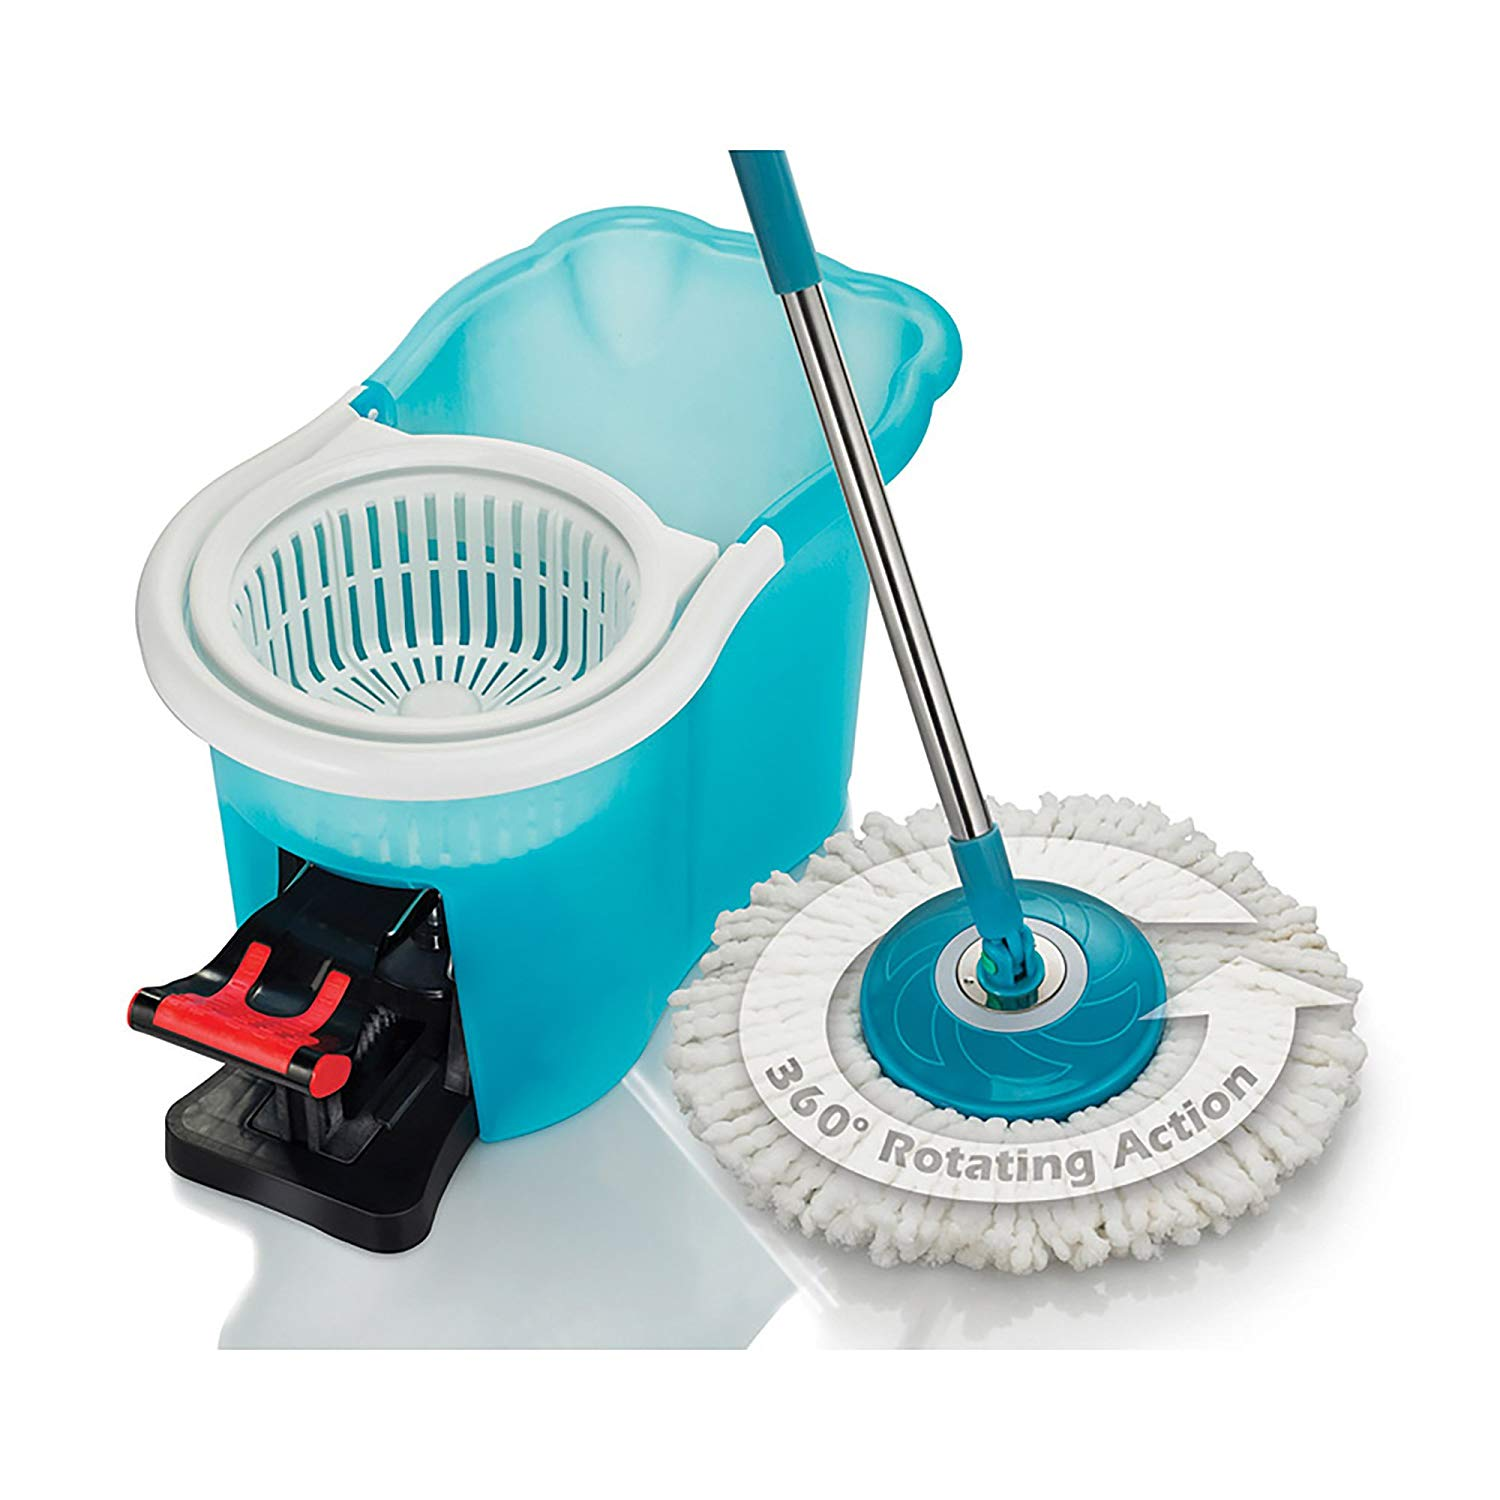 Best Cleaning Products, Hurricane Spin Mop